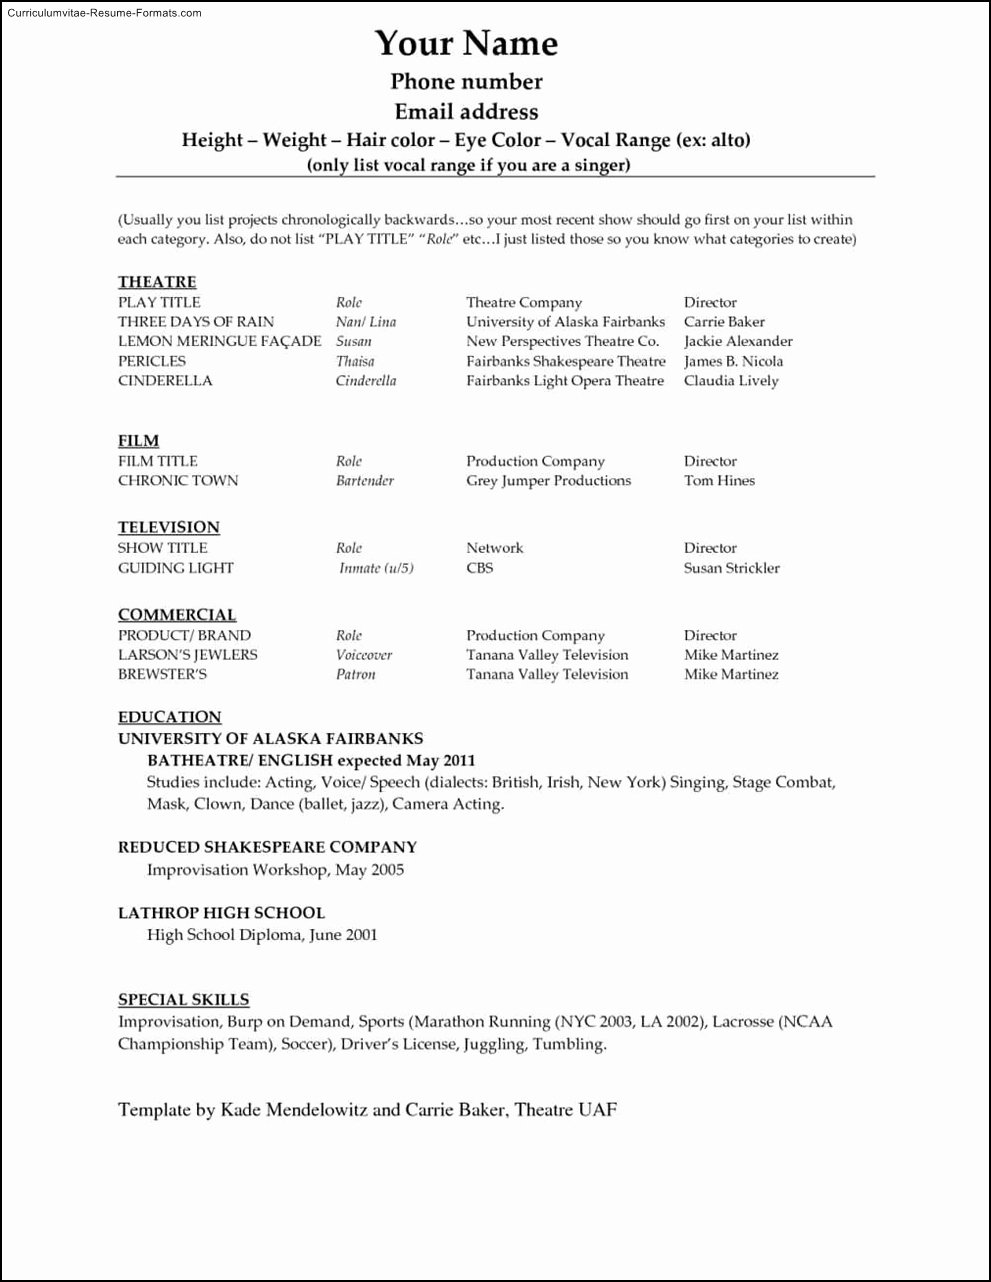 Microsoft Word 2010 Resume Template Free Samples